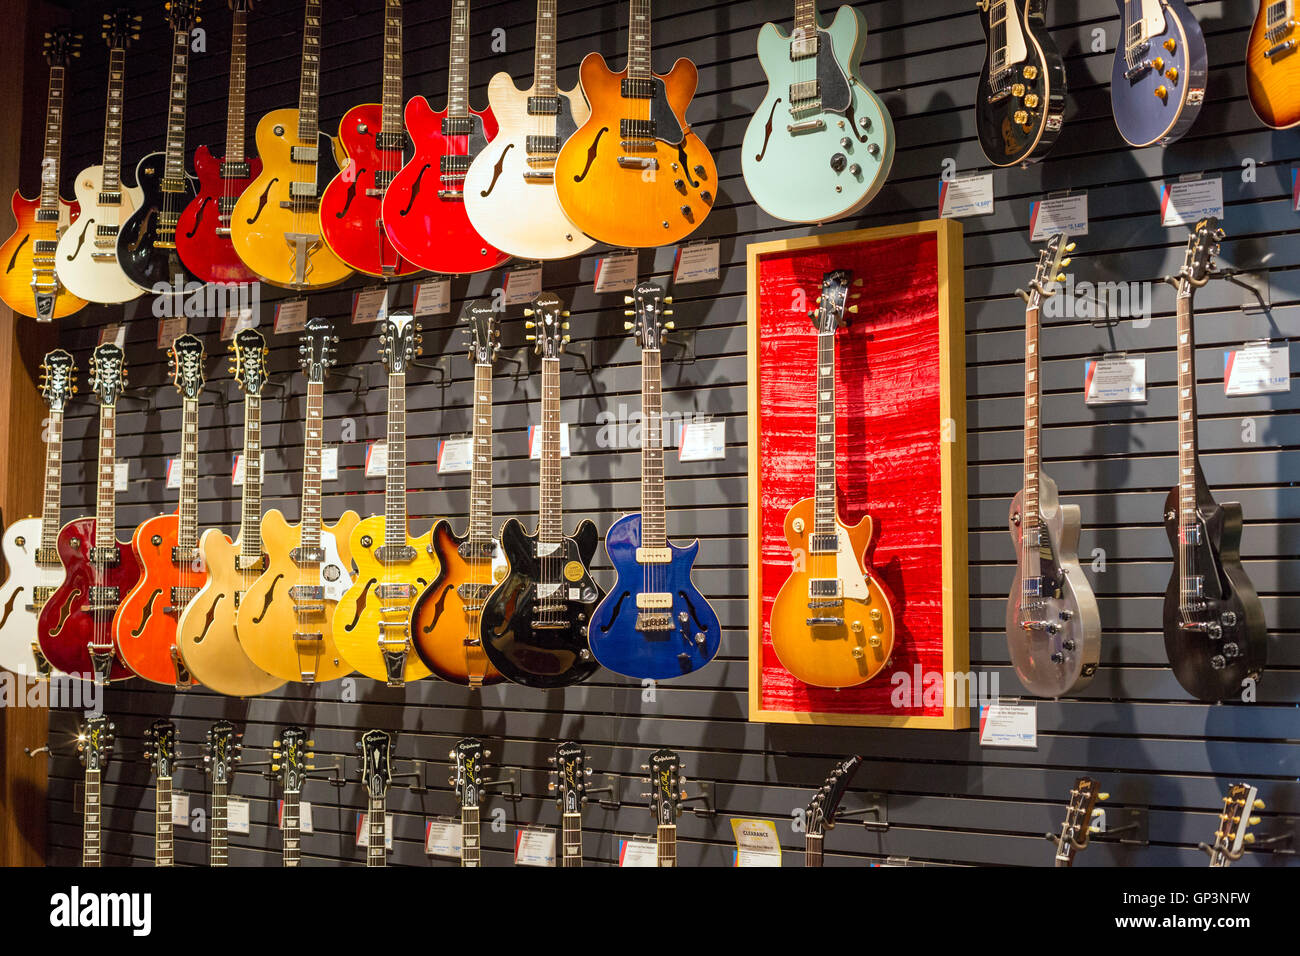 music store stock photos music store stock images alamy. Black Bedroom Furniture Sets. Home Design Ideas